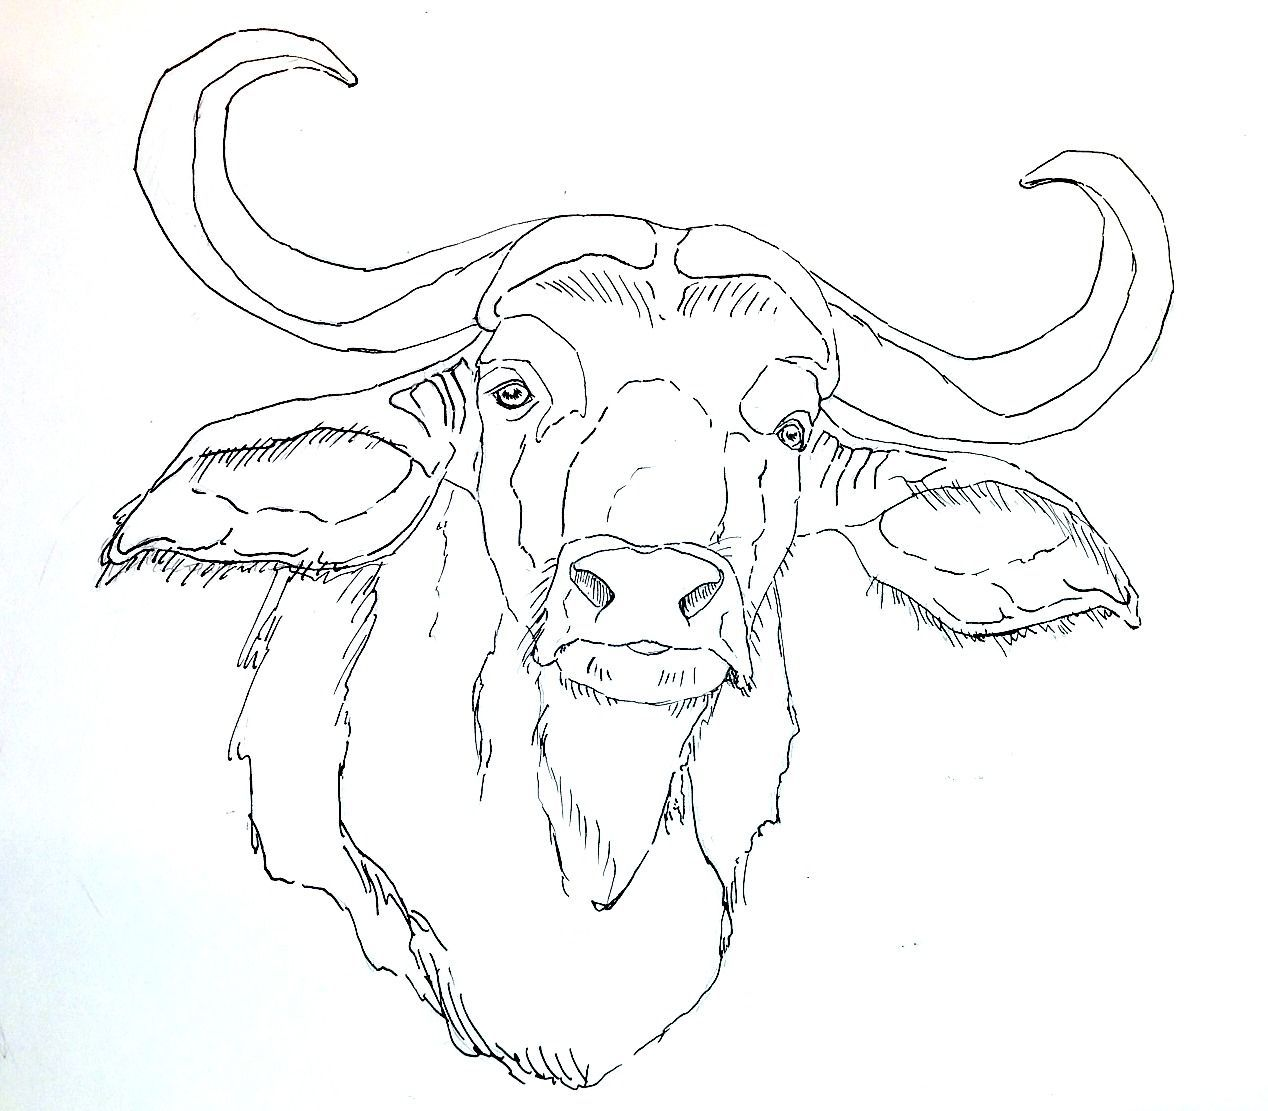 1268x1111 Appealing Coloring Pages Draw A Buffalo Wild Animal Sheet For Pic